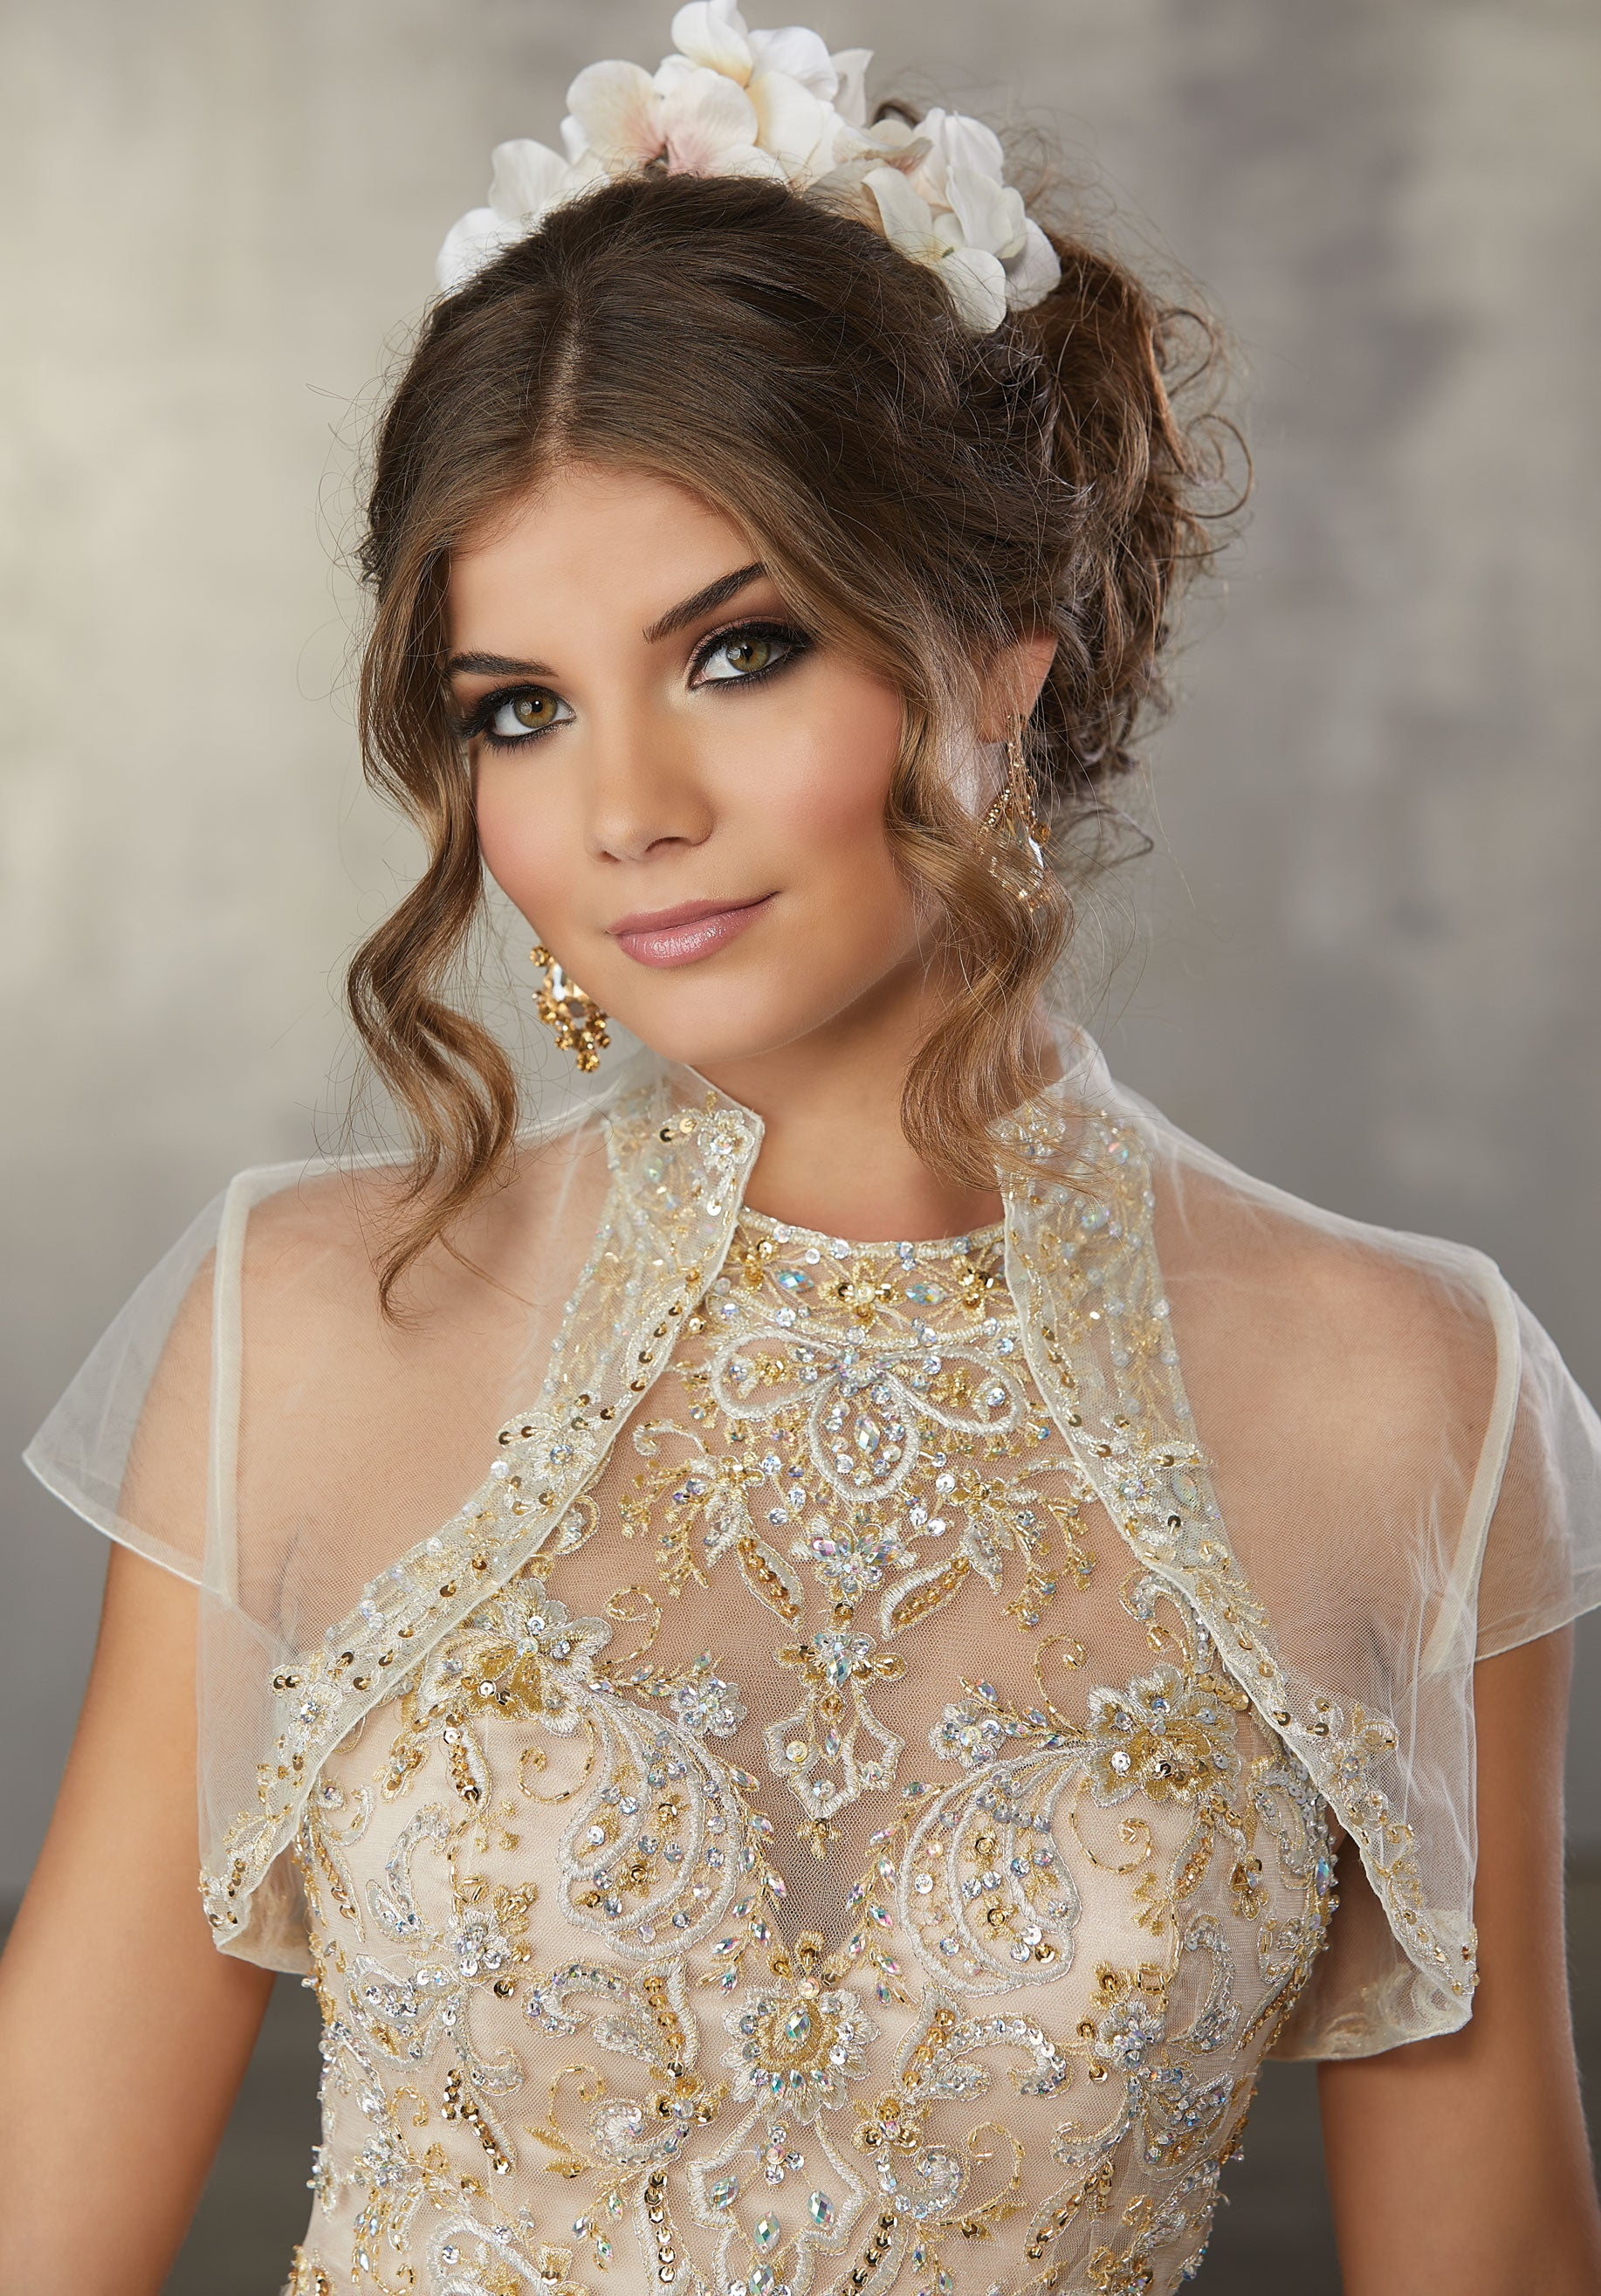 78067 Metallic, Embroidered Appliqués with Crystal Beading on a Quinceanera Tulle Ballgown